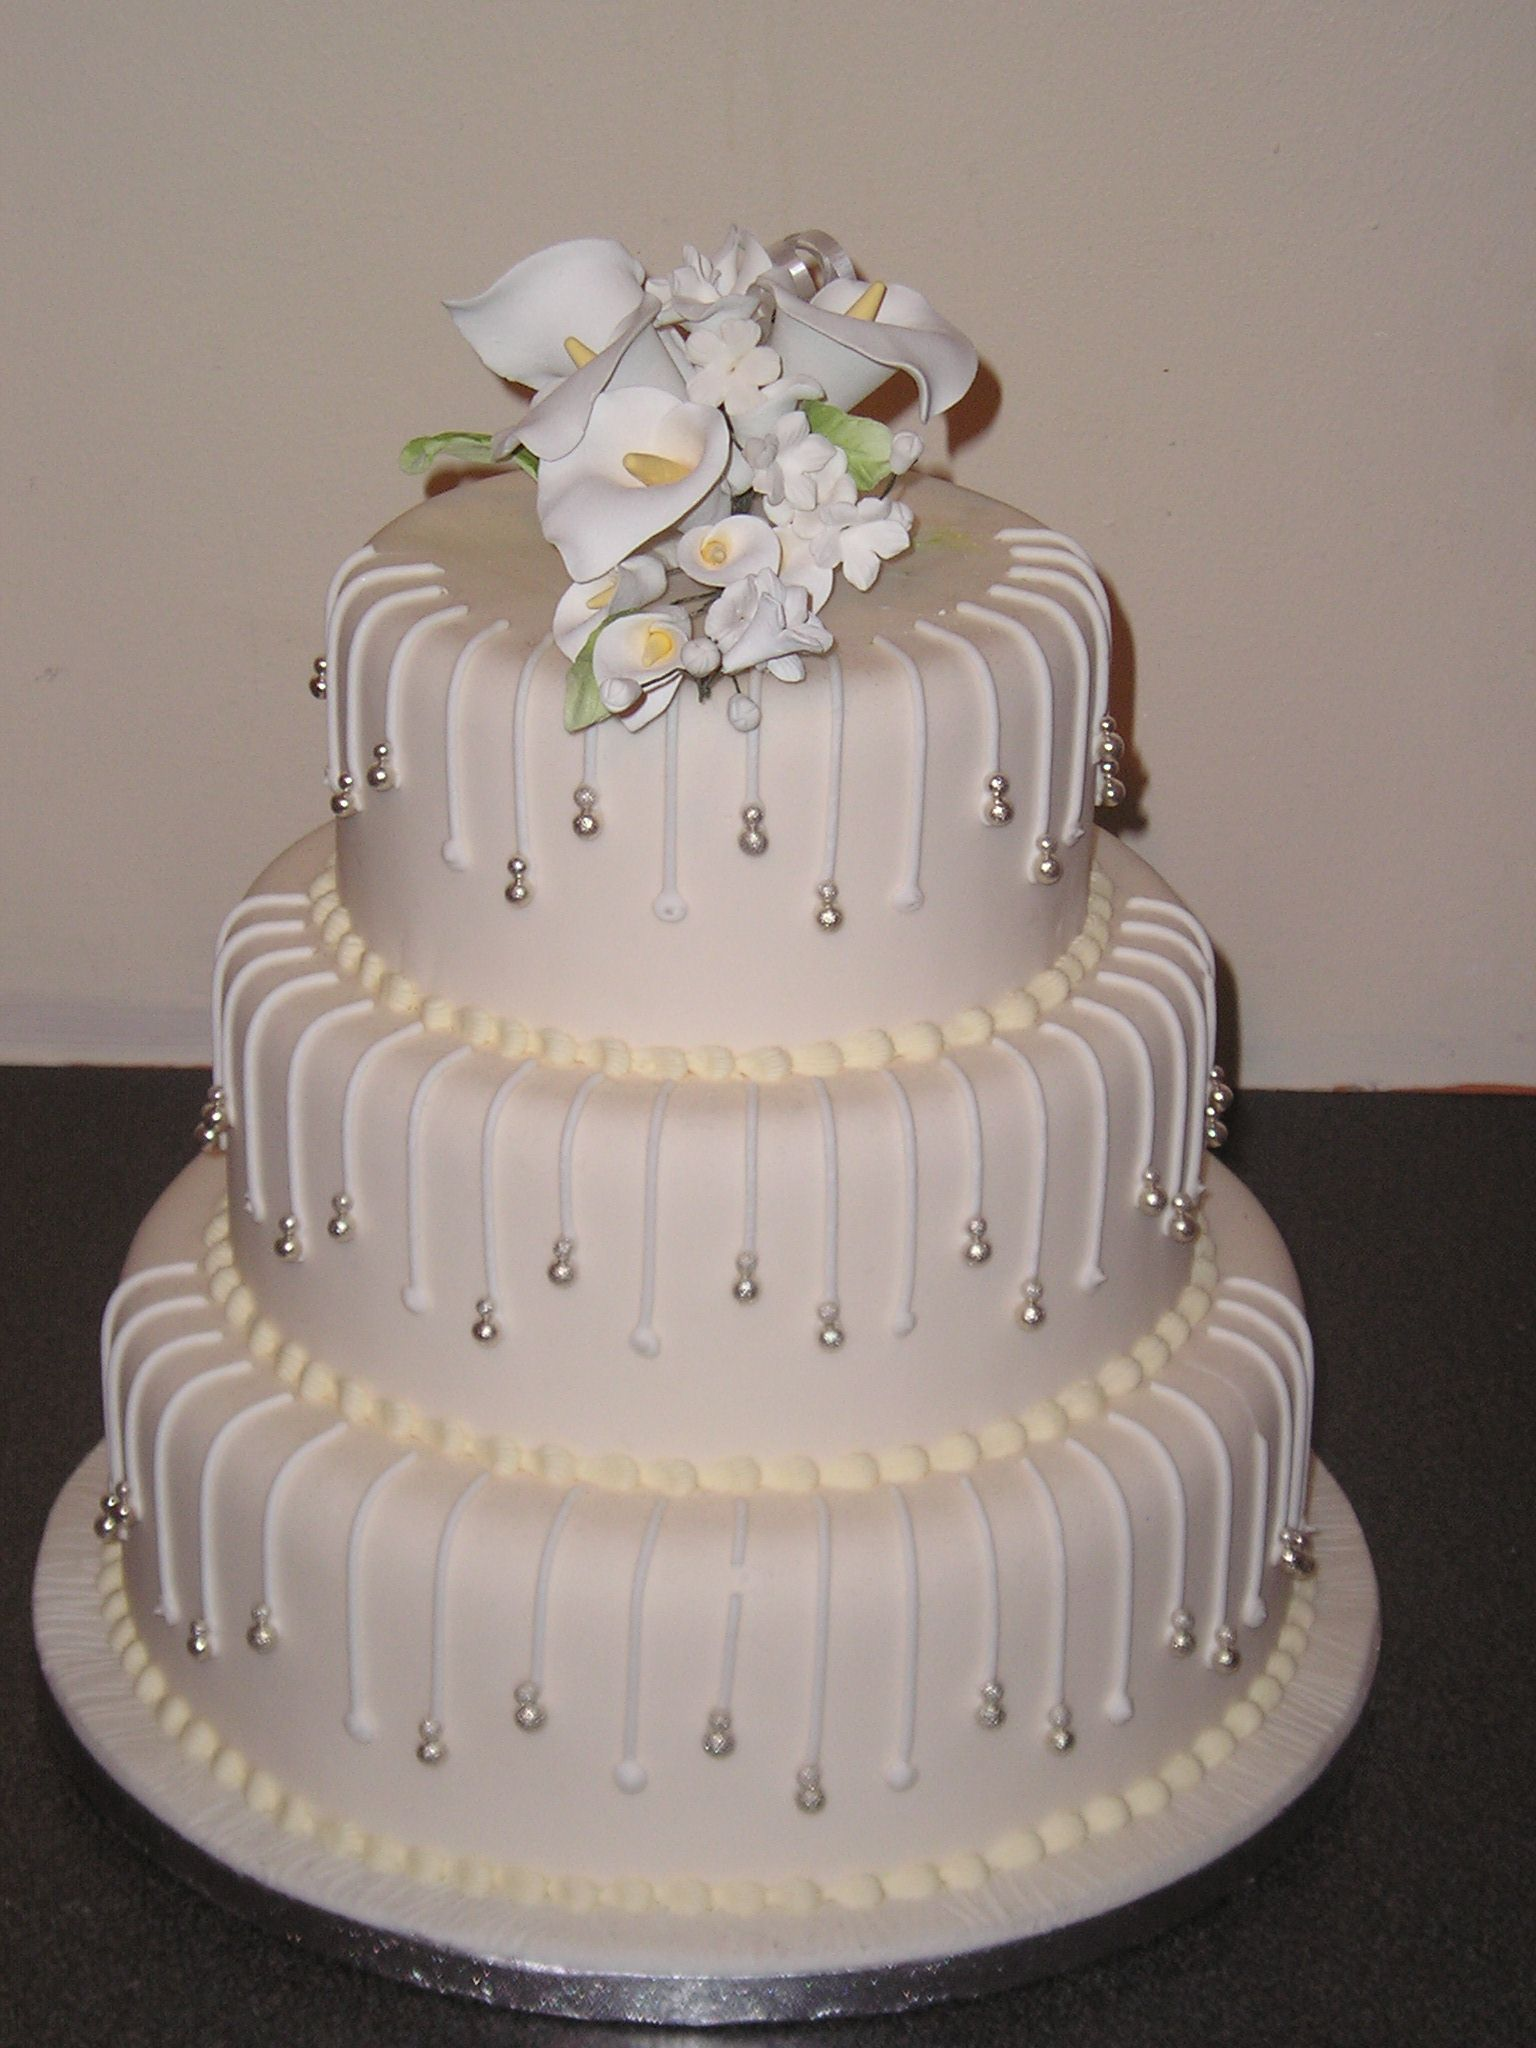 3 Tier Modern Design Wedding Cakes Shop By Occasion Main Section The Cake Creator